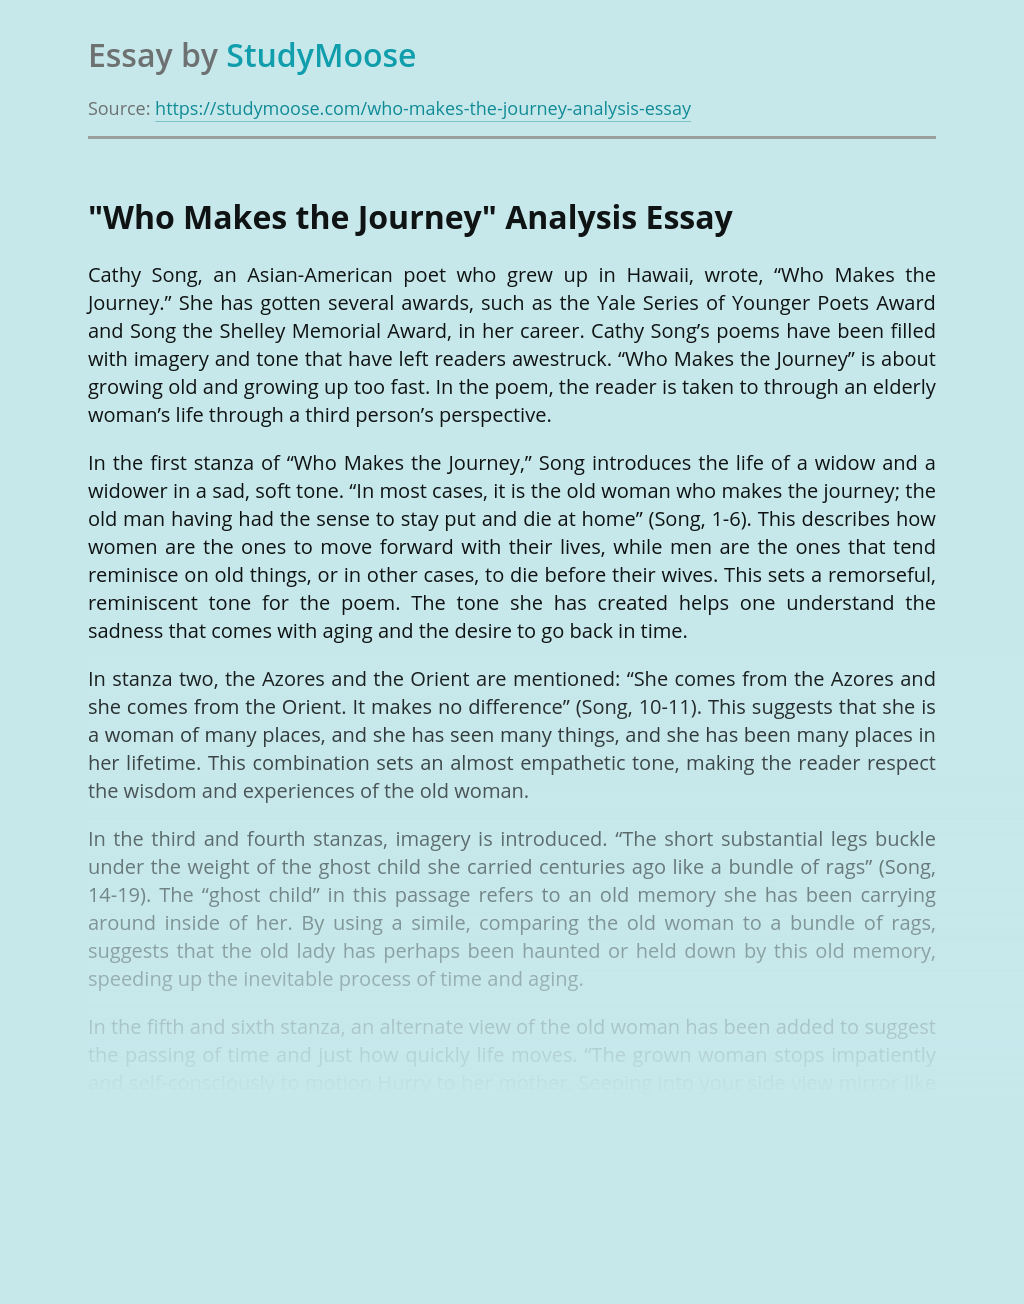 Who Makes the Journey Analysis?